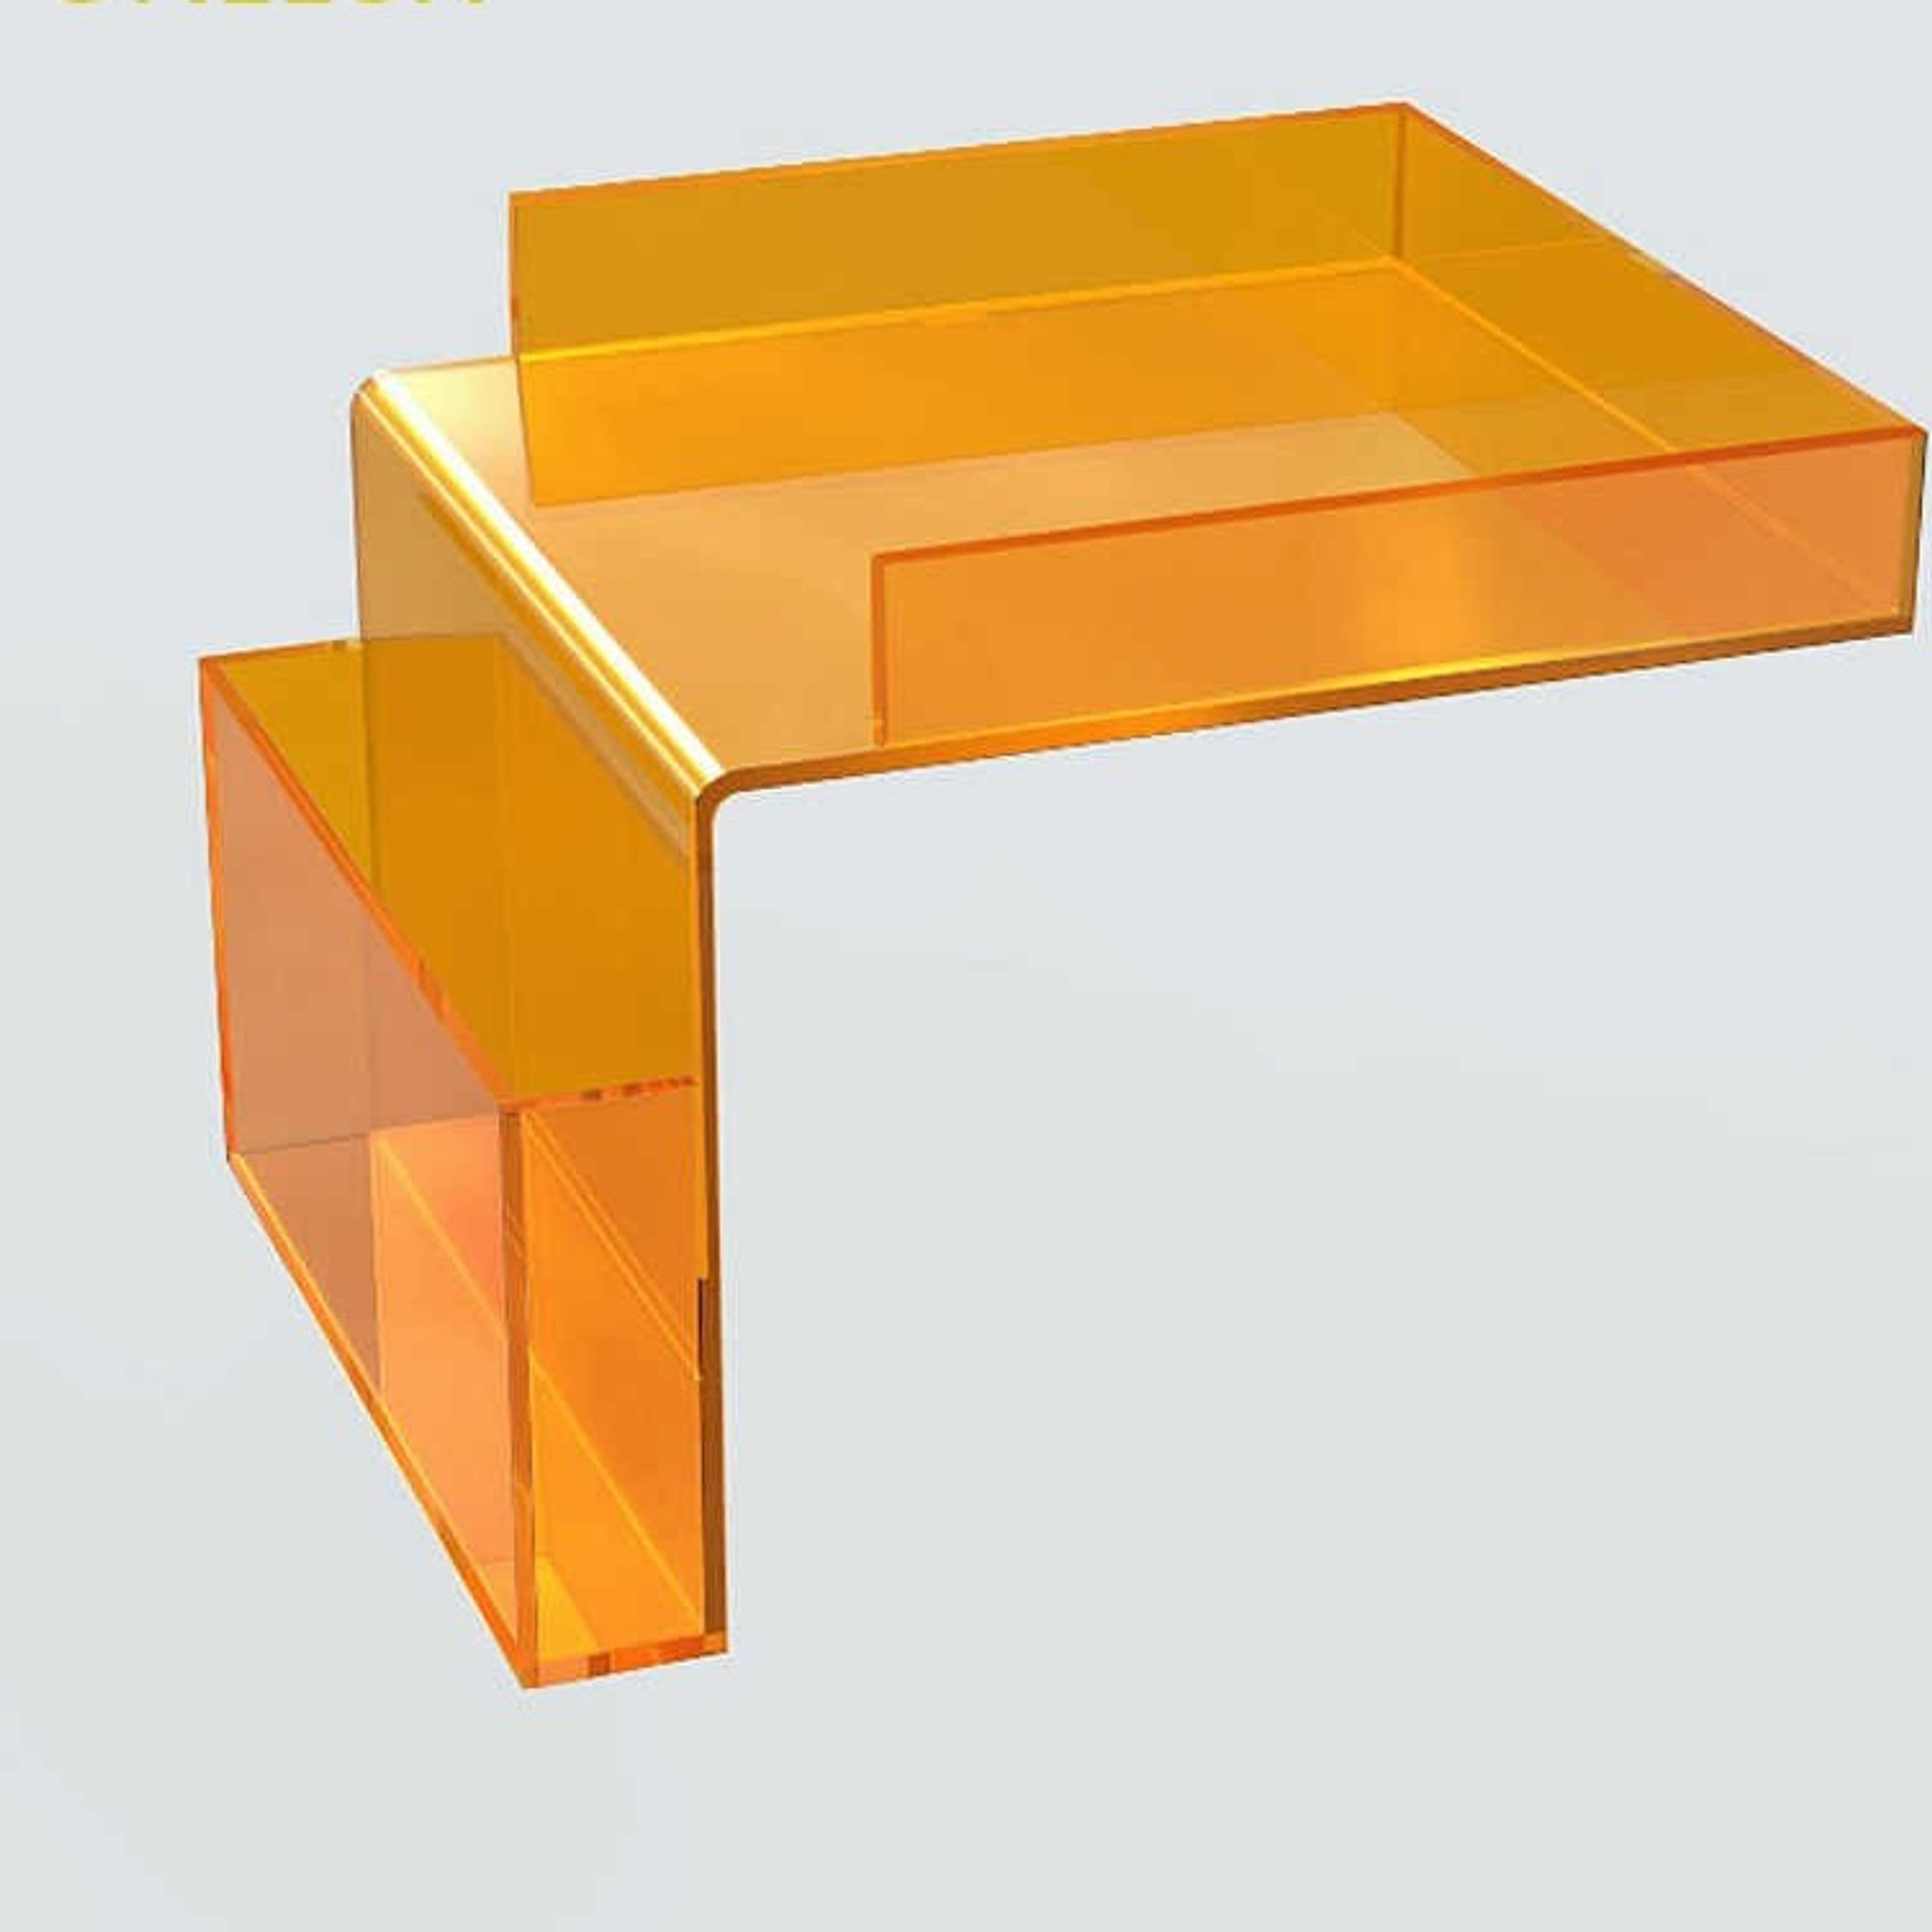 Overhang Storage Tray with Pocket clear orange acrylic lucite l shape organizer